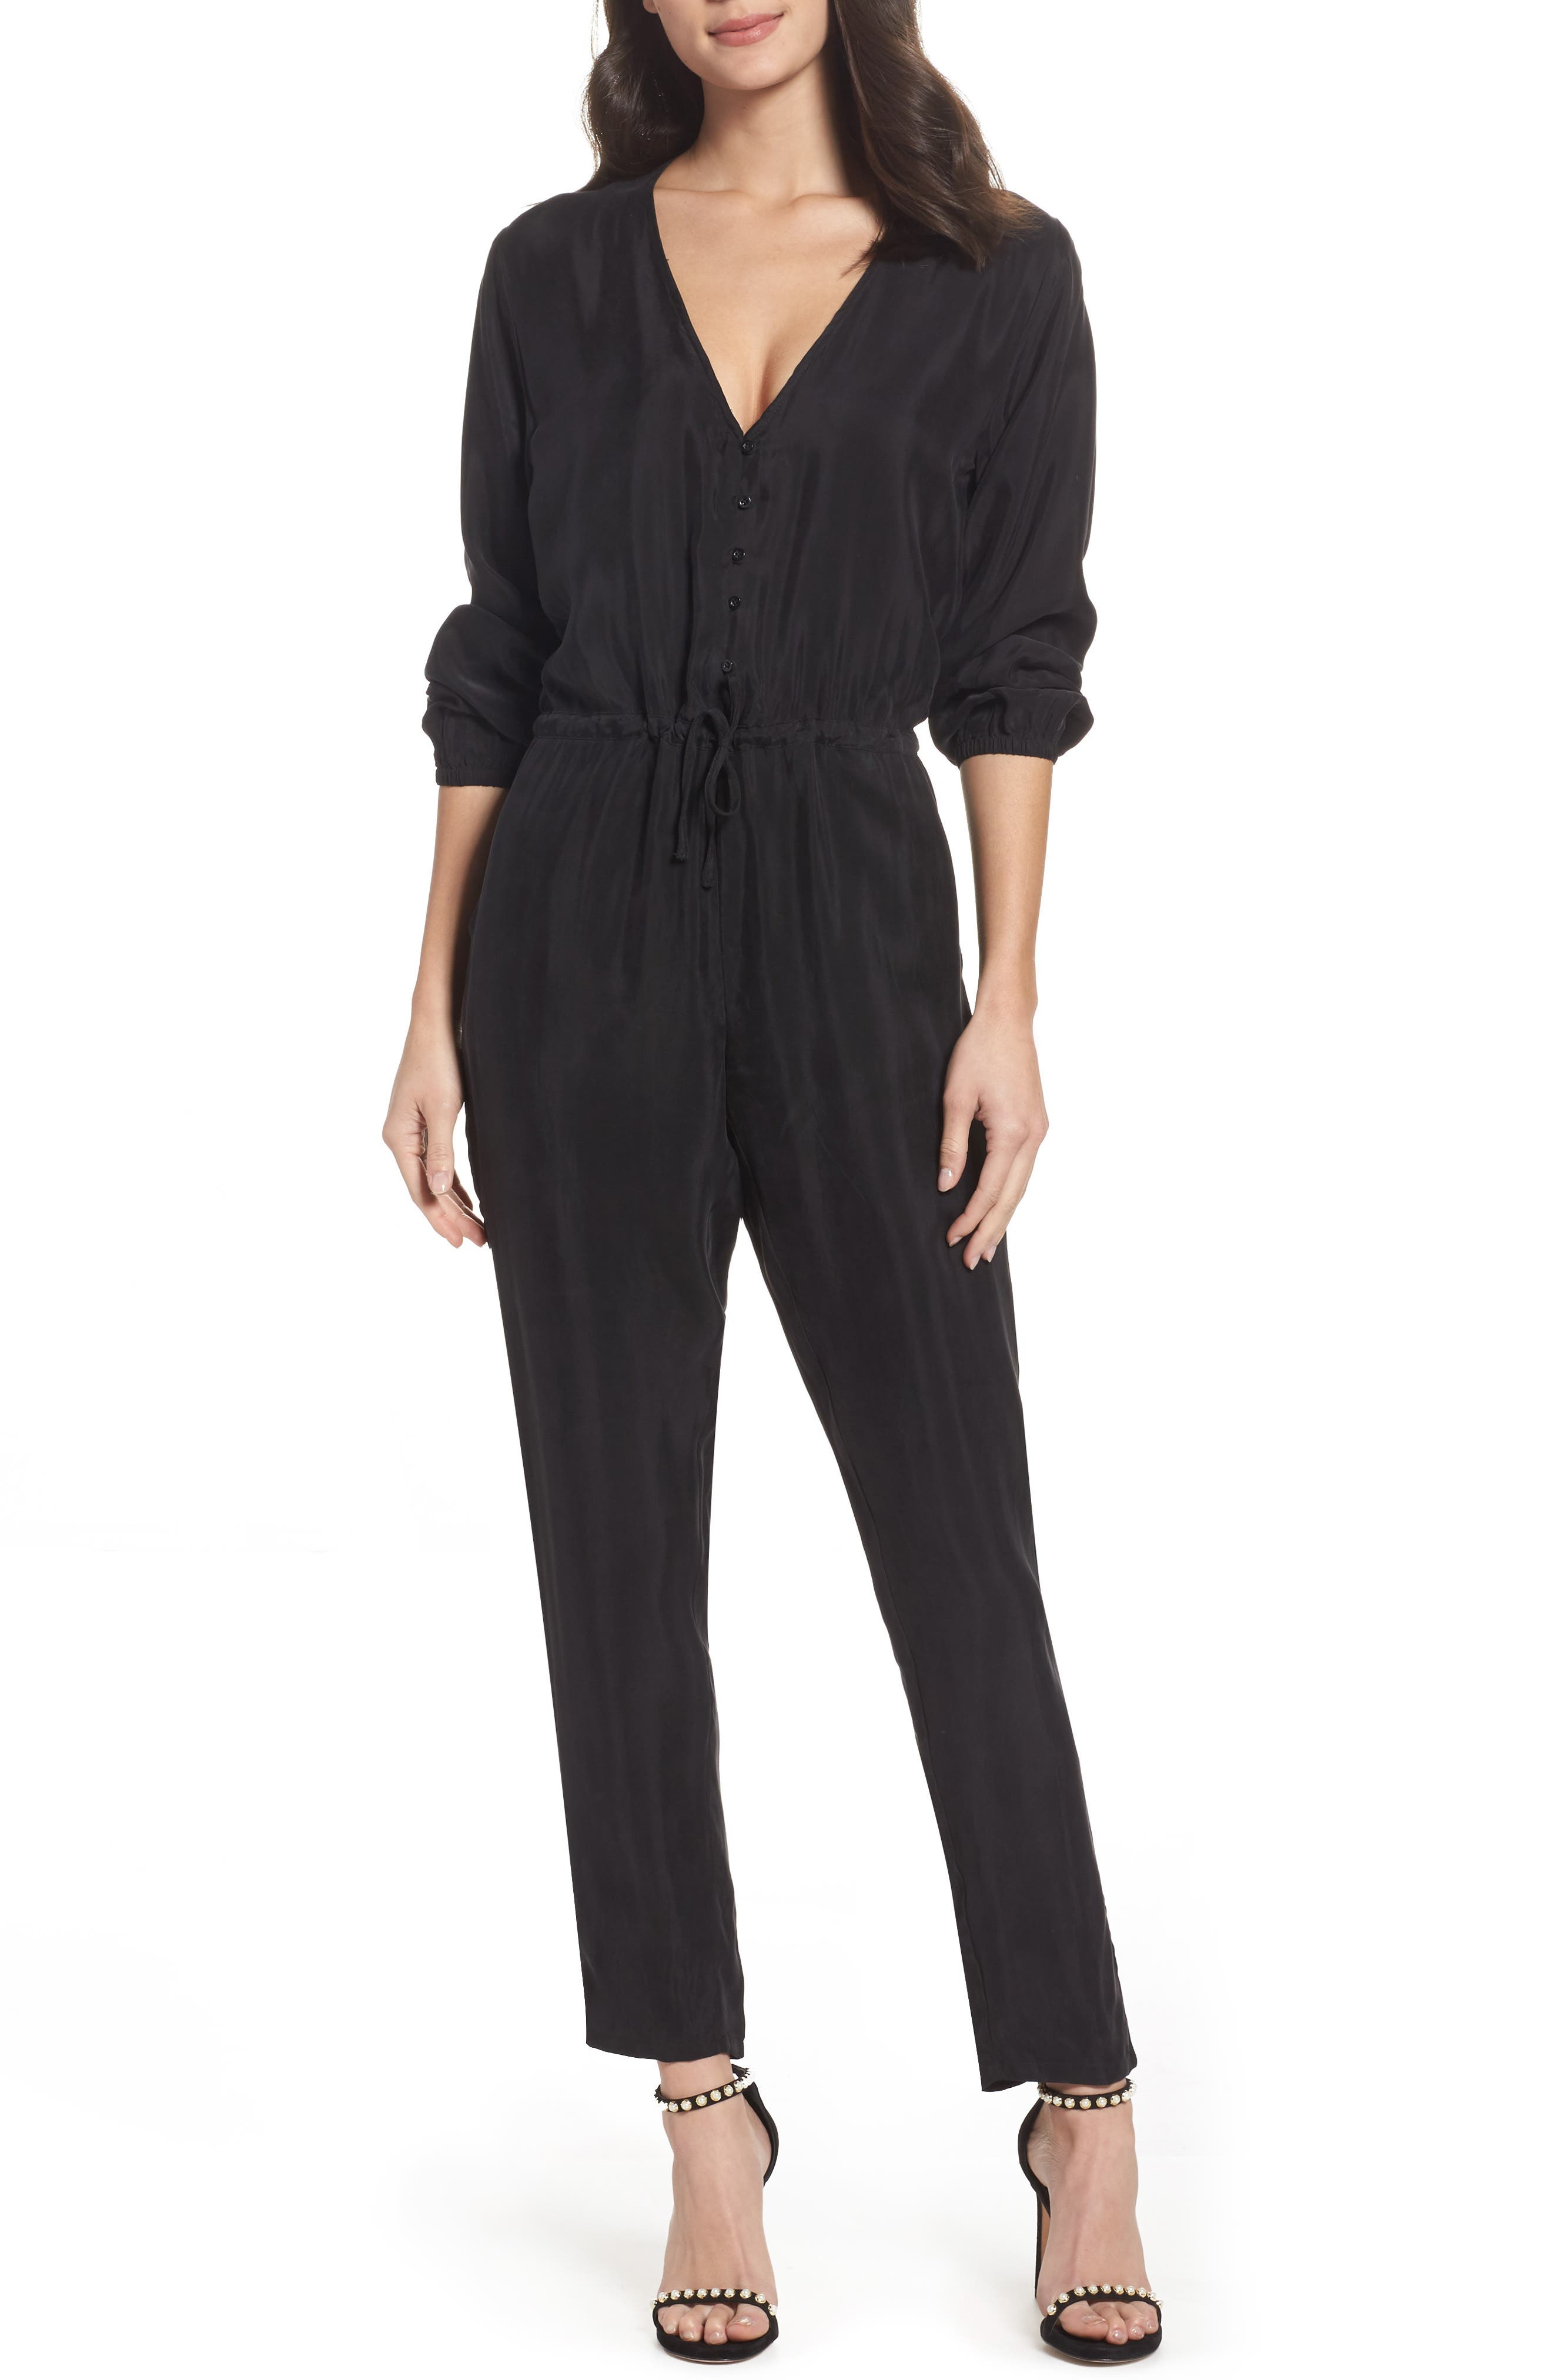 Elizabeth Jumpsuit,                         Main,                         color, Black